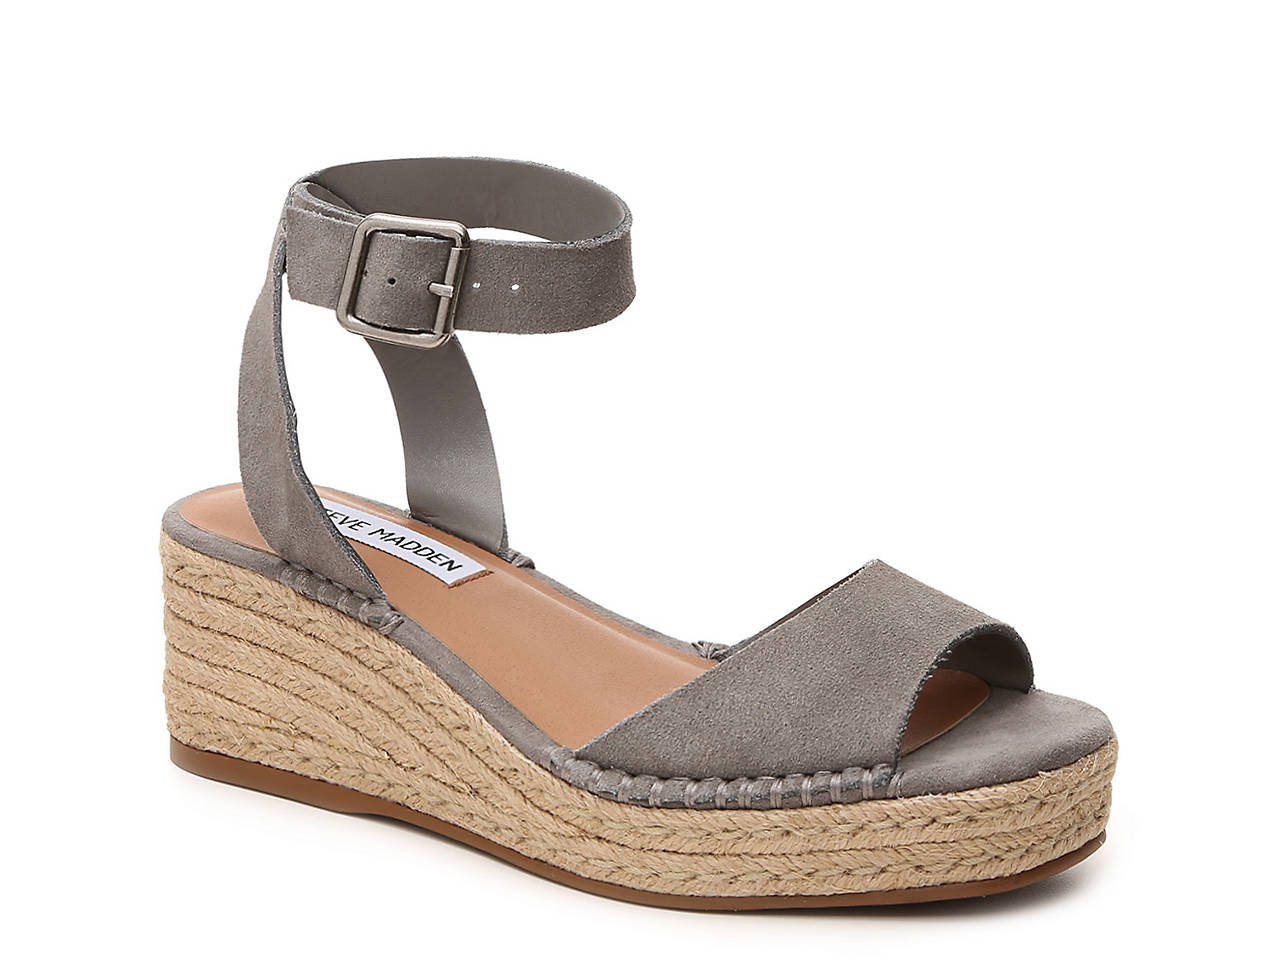 Black sandals at dsw - Dsw Shoes For Women Sandals Dsw Shoes For Women Sandals 33